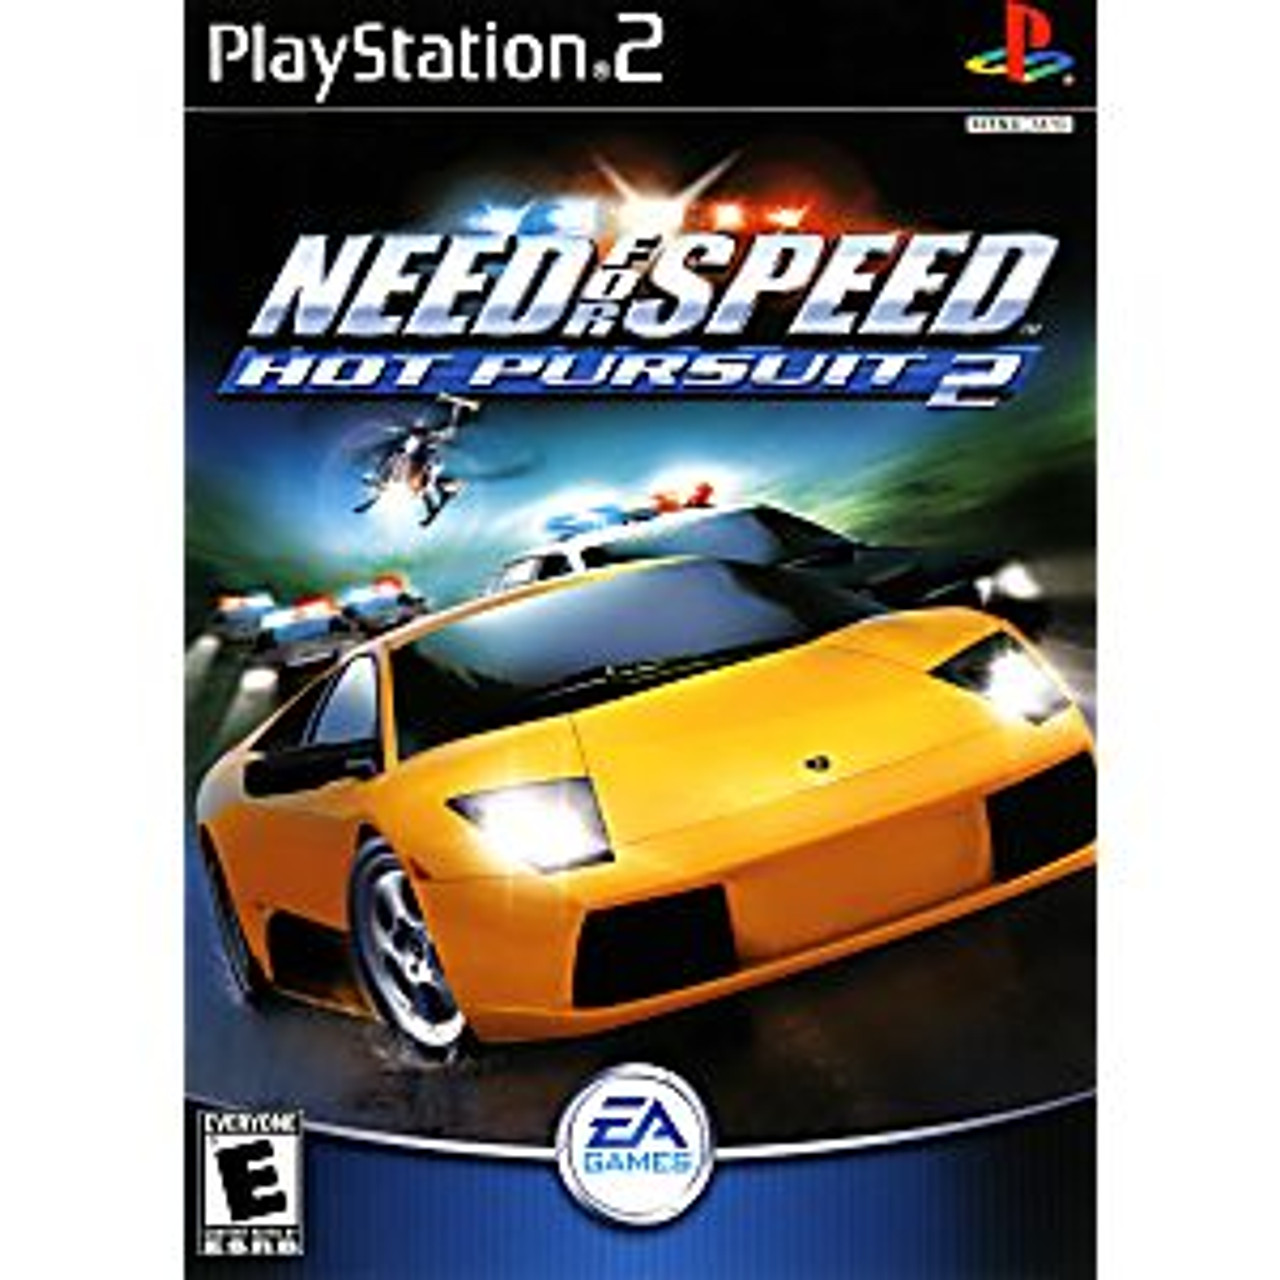 NEED FOR SPEED HOT PURSUIT 2 [E] - PS2